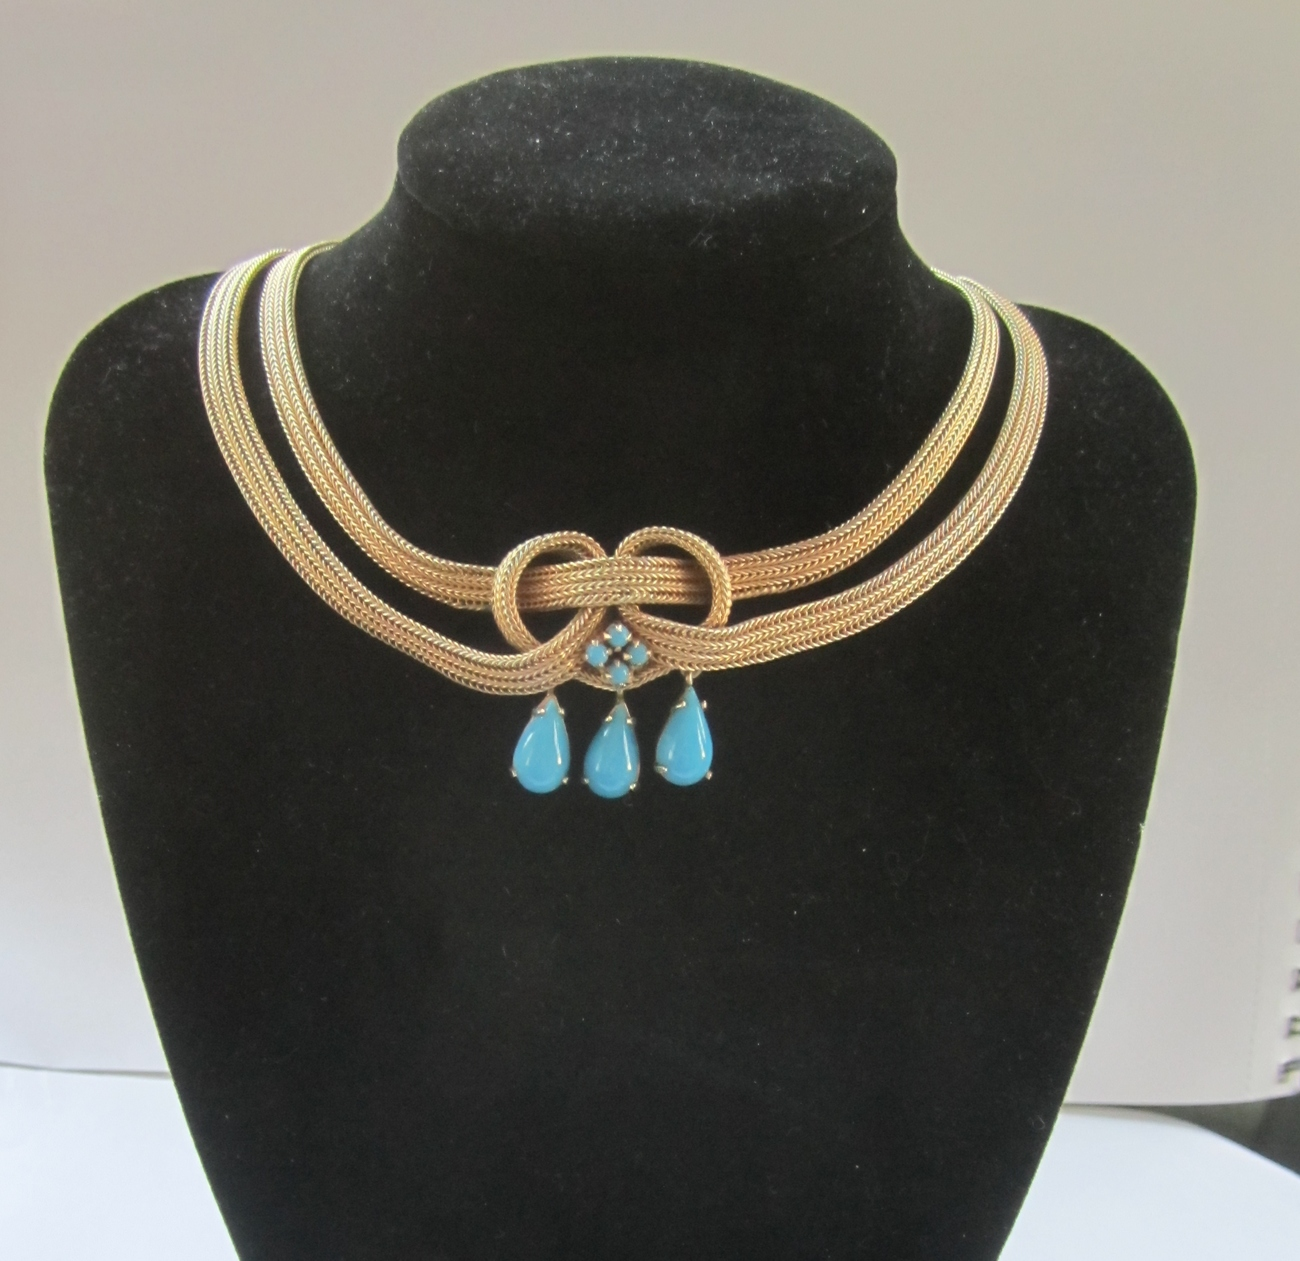 Henkel & Grosse for Dior Faux Turquoise Drops Necklace Germany 1960.